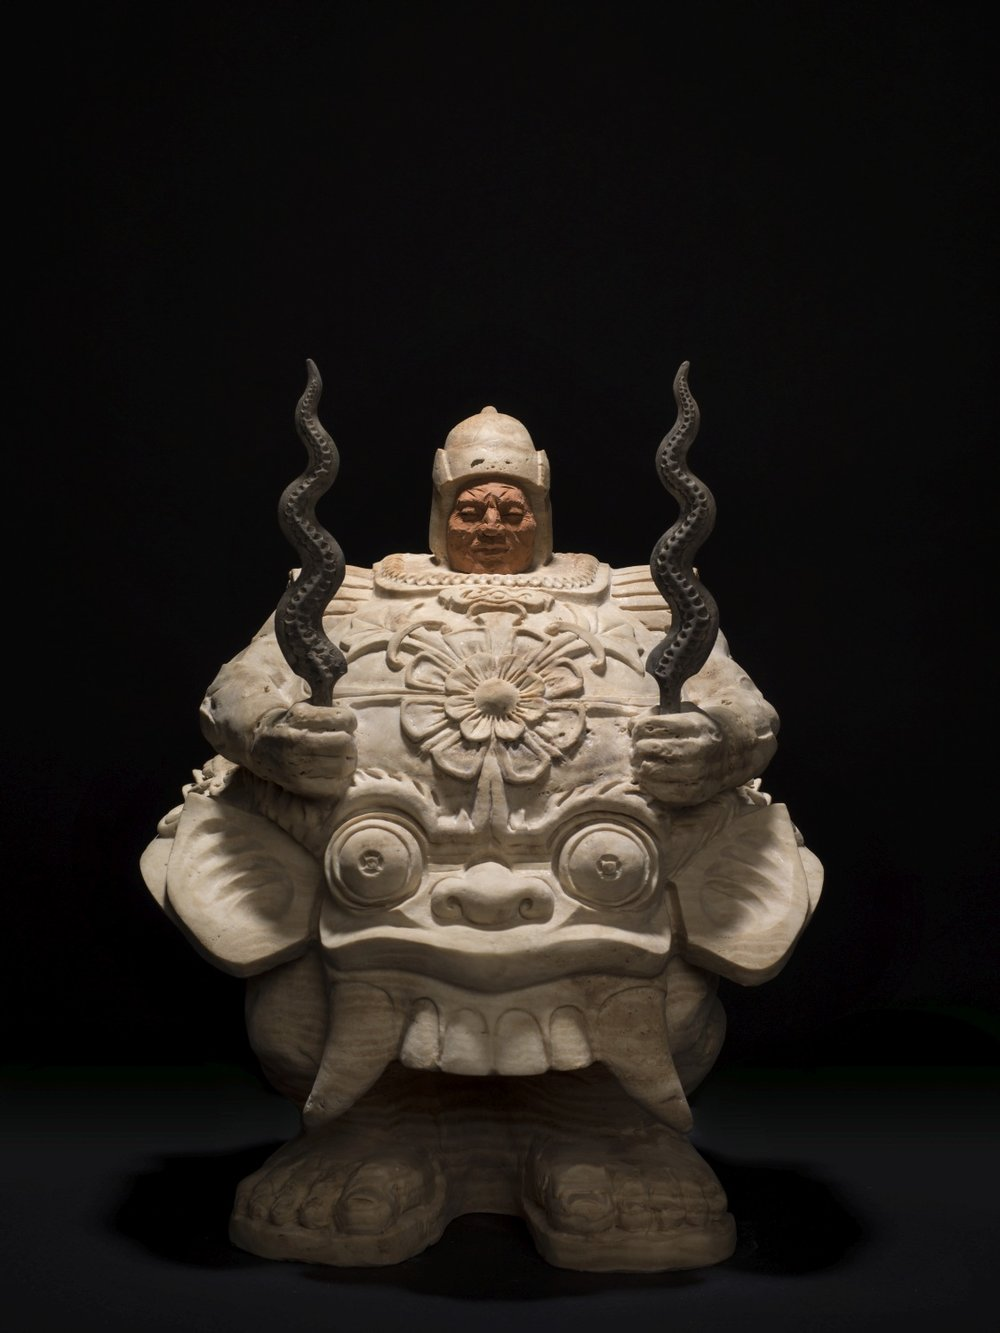 Matteo Pugliese, Balinese Guardian, 2017, Marble, 17.71 x 15 x 11.41 inches